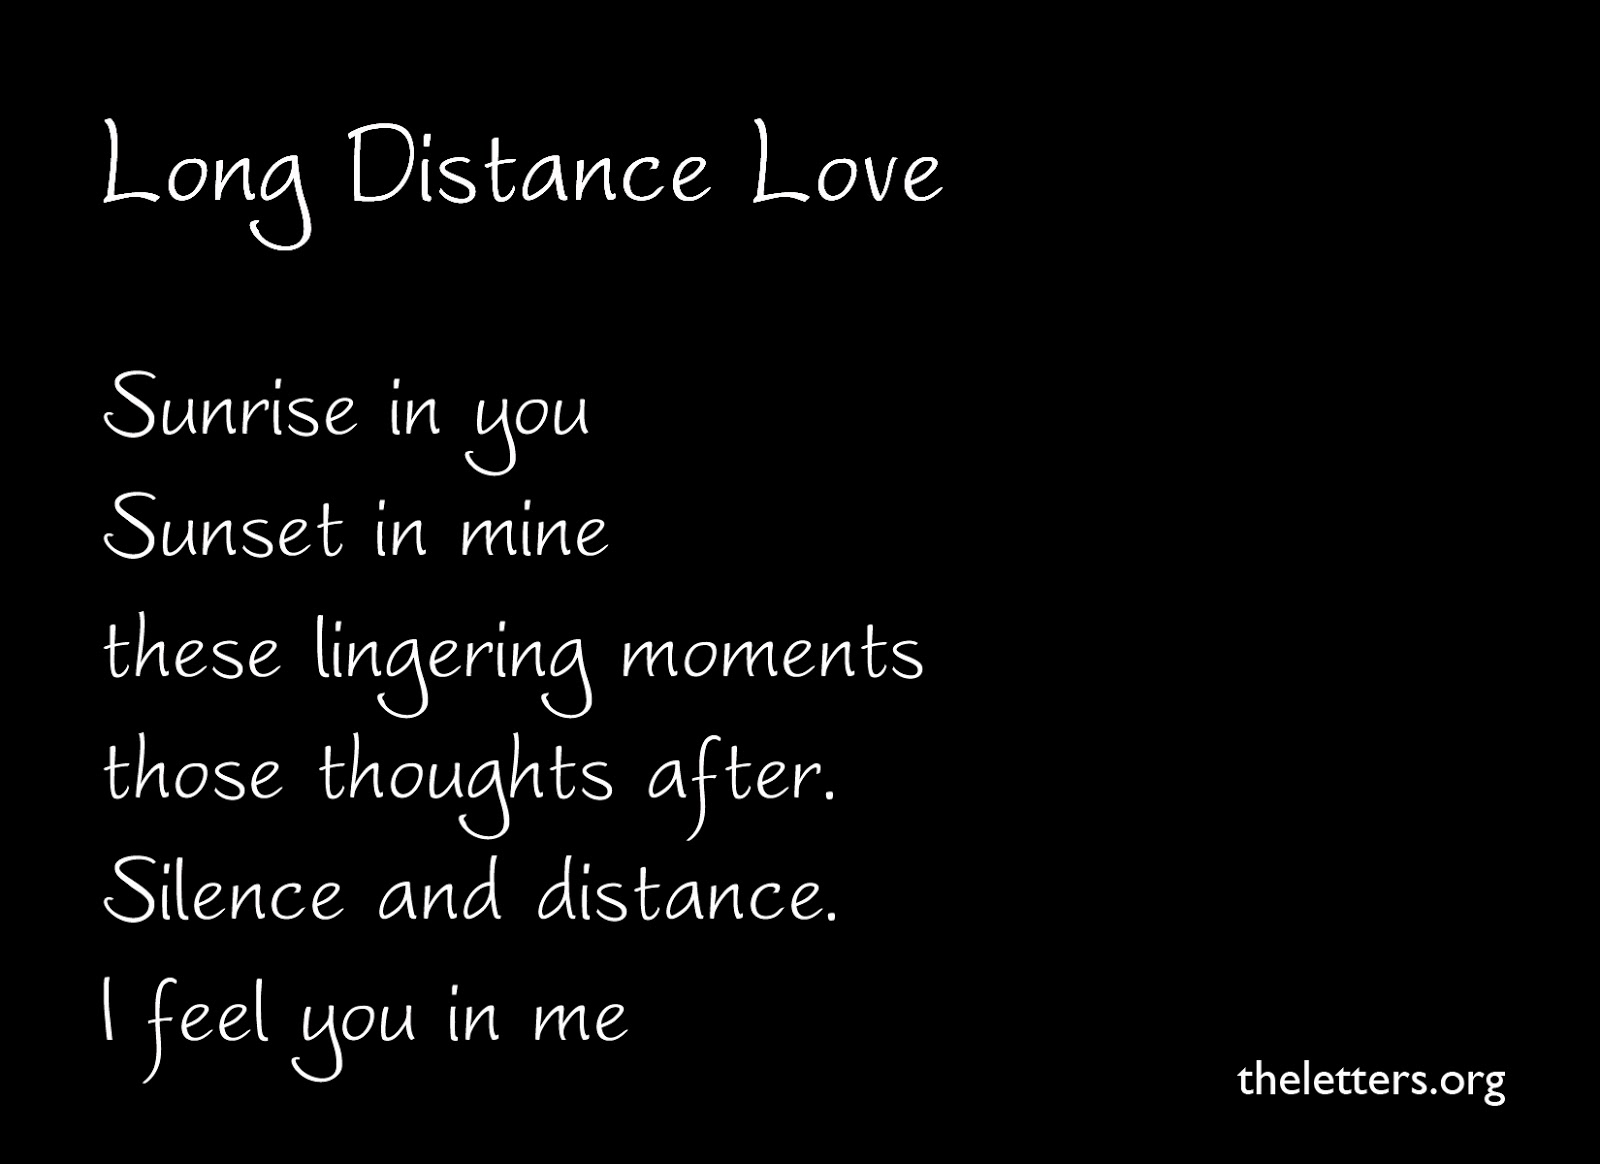 long distance relationship and love quotes